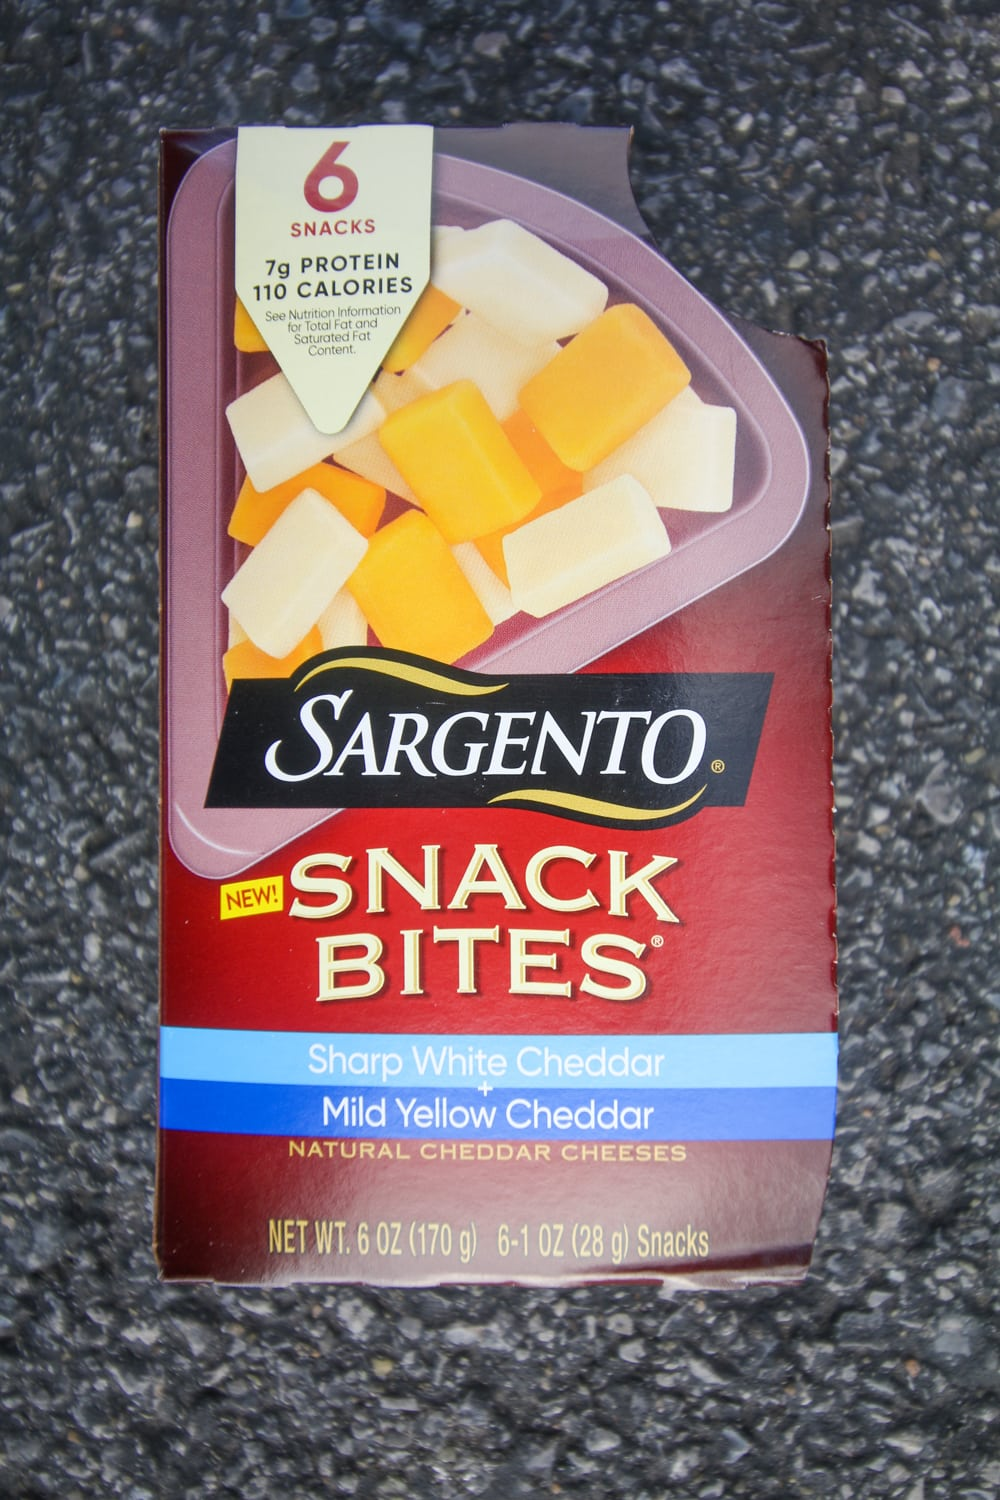 A box of cheese snack bites.